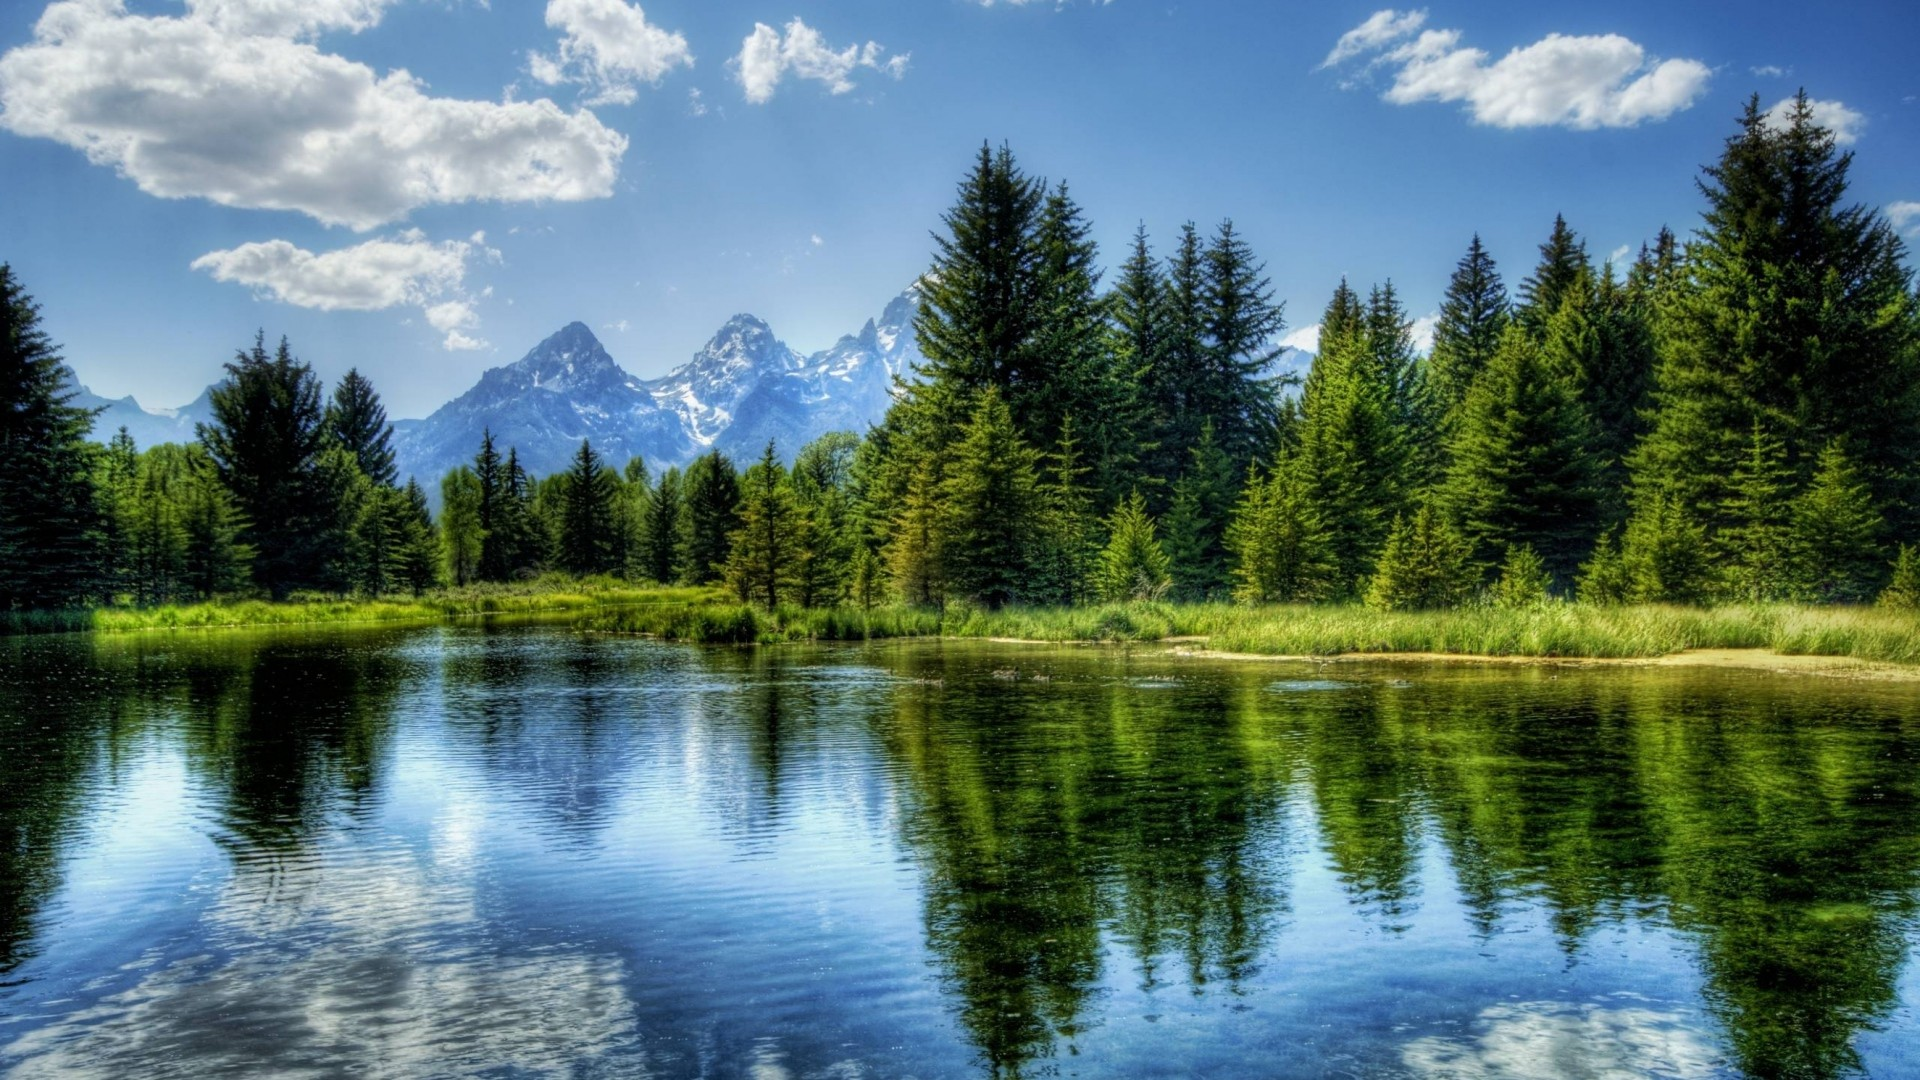 Get the latest lake, mountain, tree news, pictures and videos and learn all  about lake, mountain, tree from wallpapers4u.org, your wallpaper news  source.